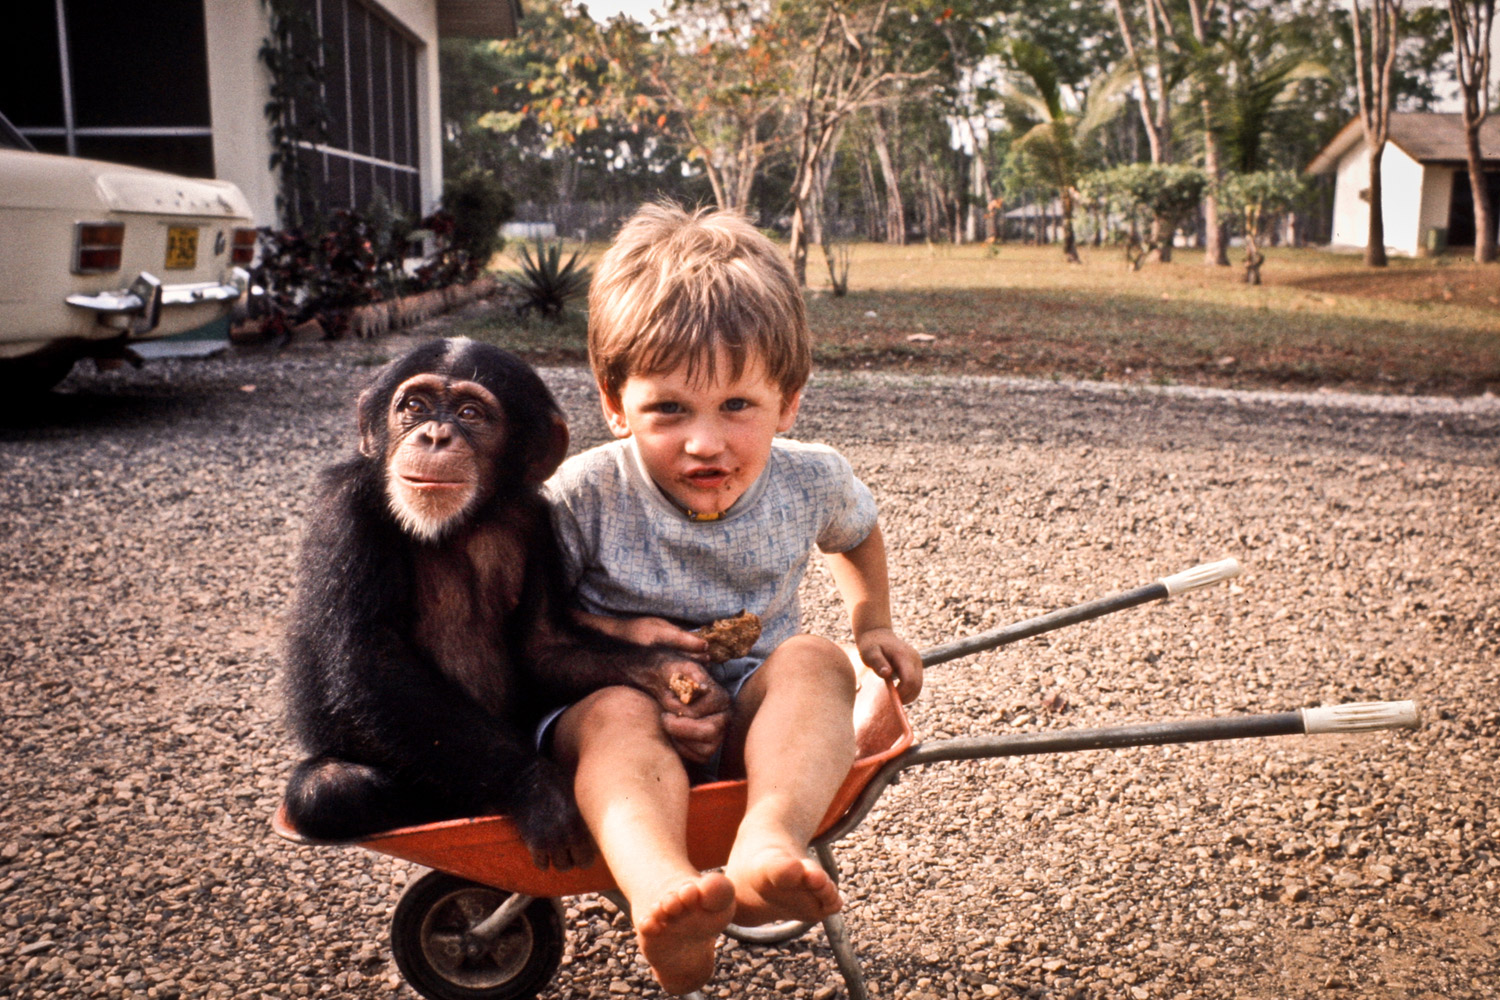 Andrew with Evelyn in the driveway. Exchem Compound, 1978.